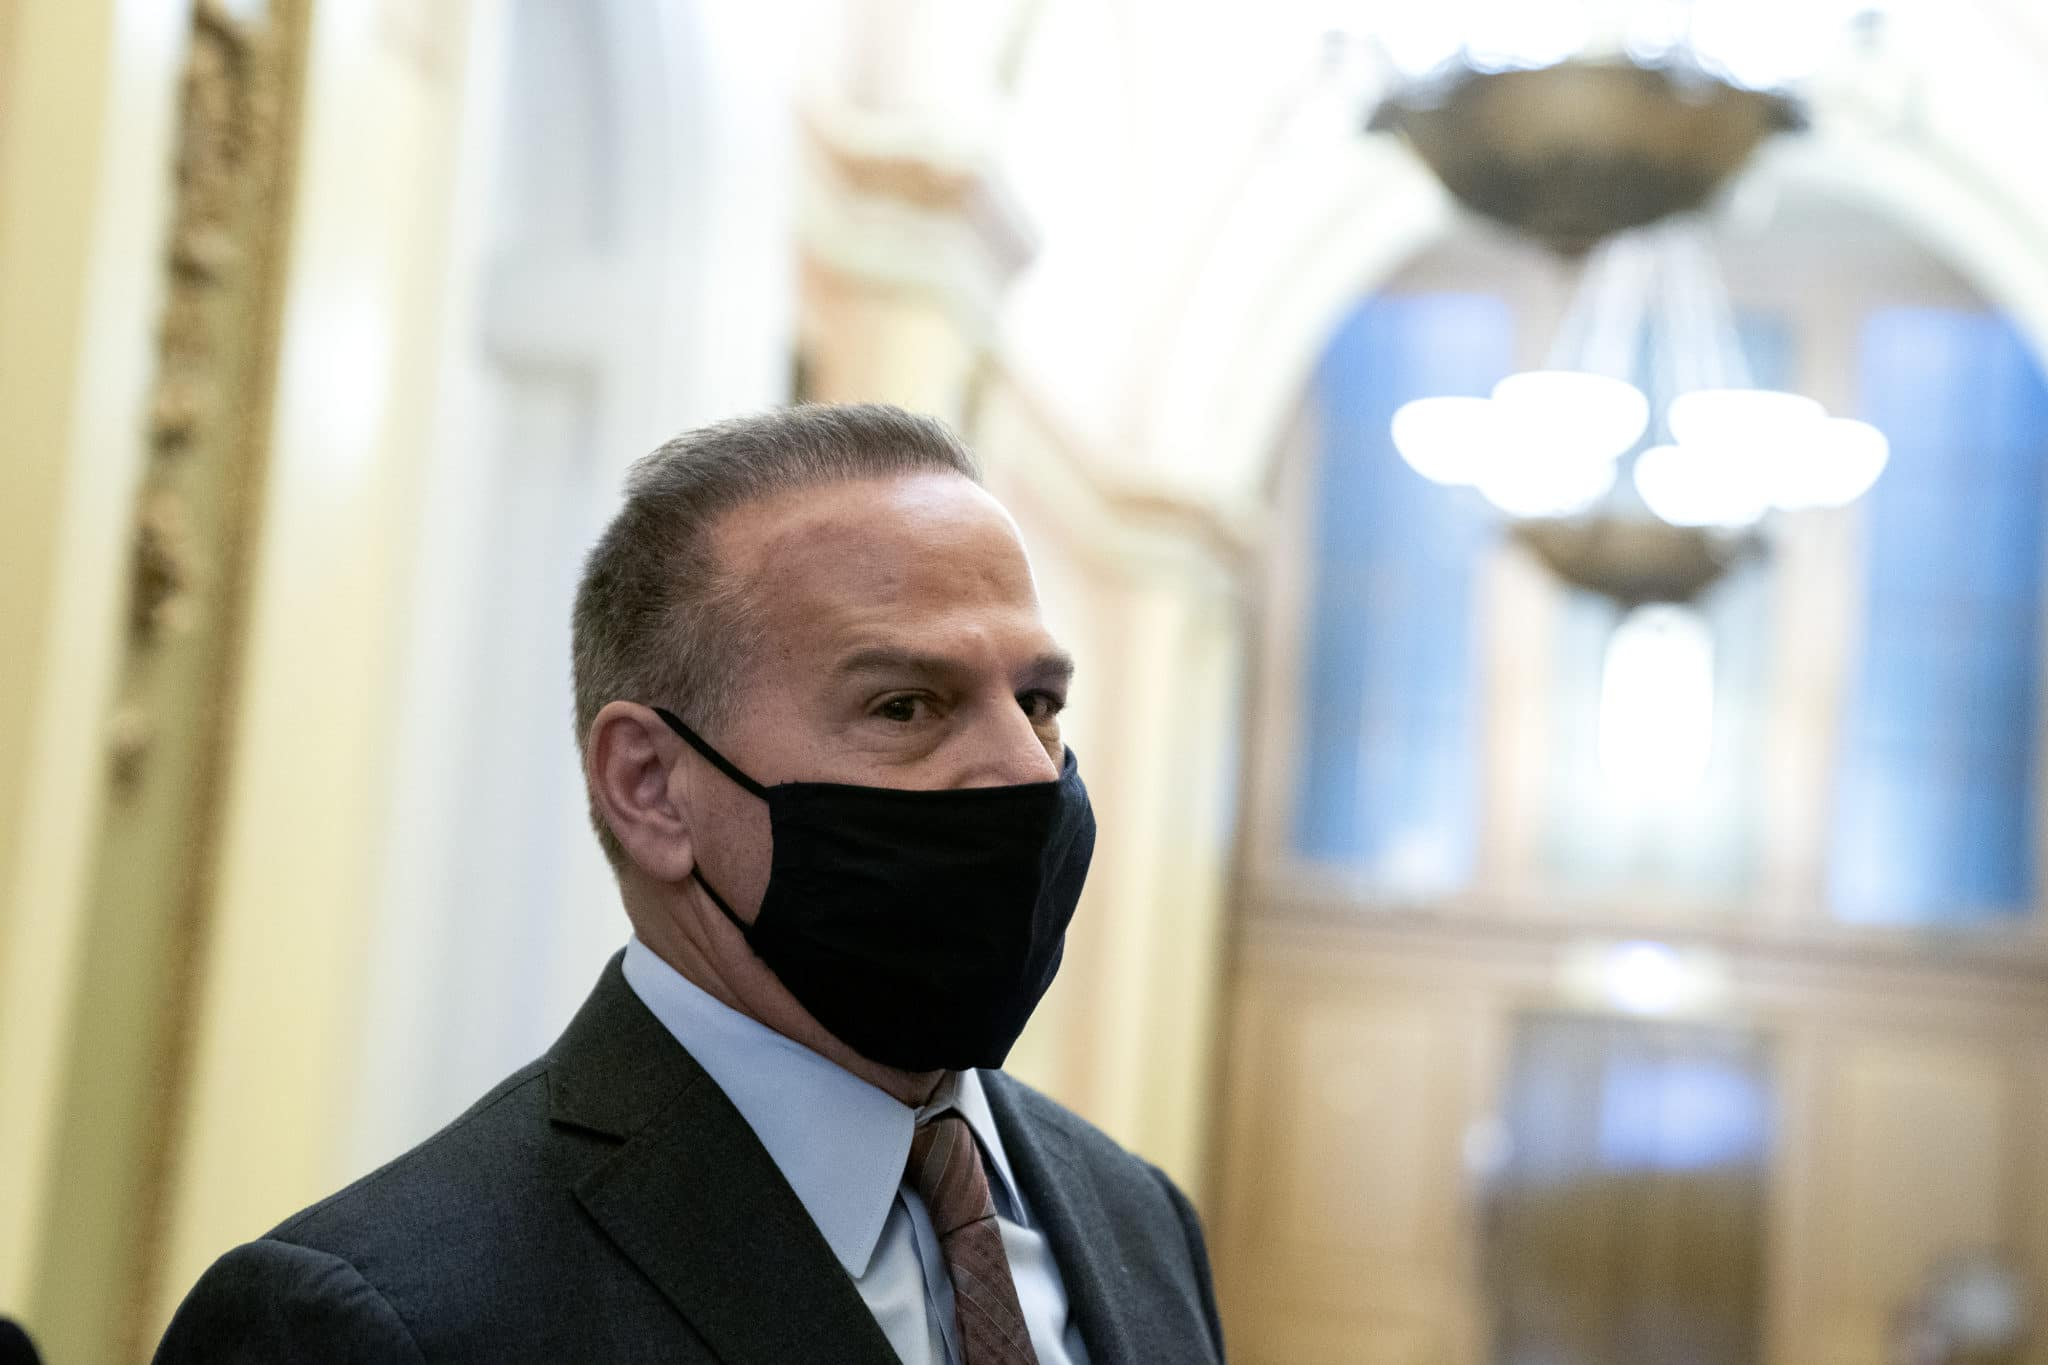 Trump impeachment: Rep. David Cicilline wears a protective mask while speaking to reporters at the US Capitol on January 11, 2021